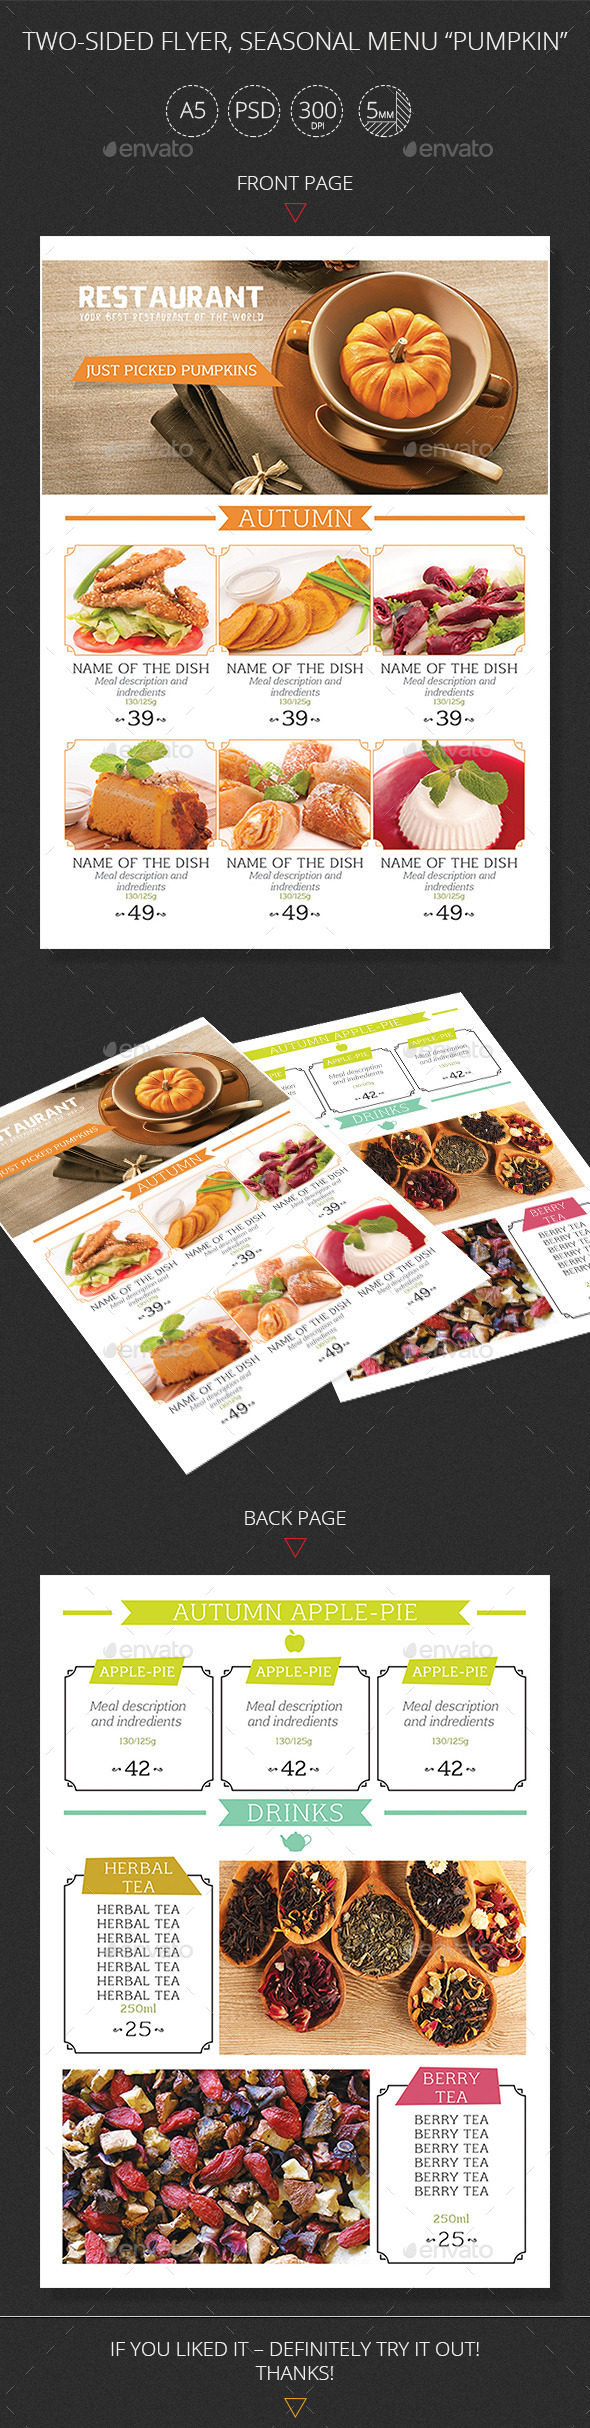 GraphicRiver Two-sided Flyer Seasonal Menu